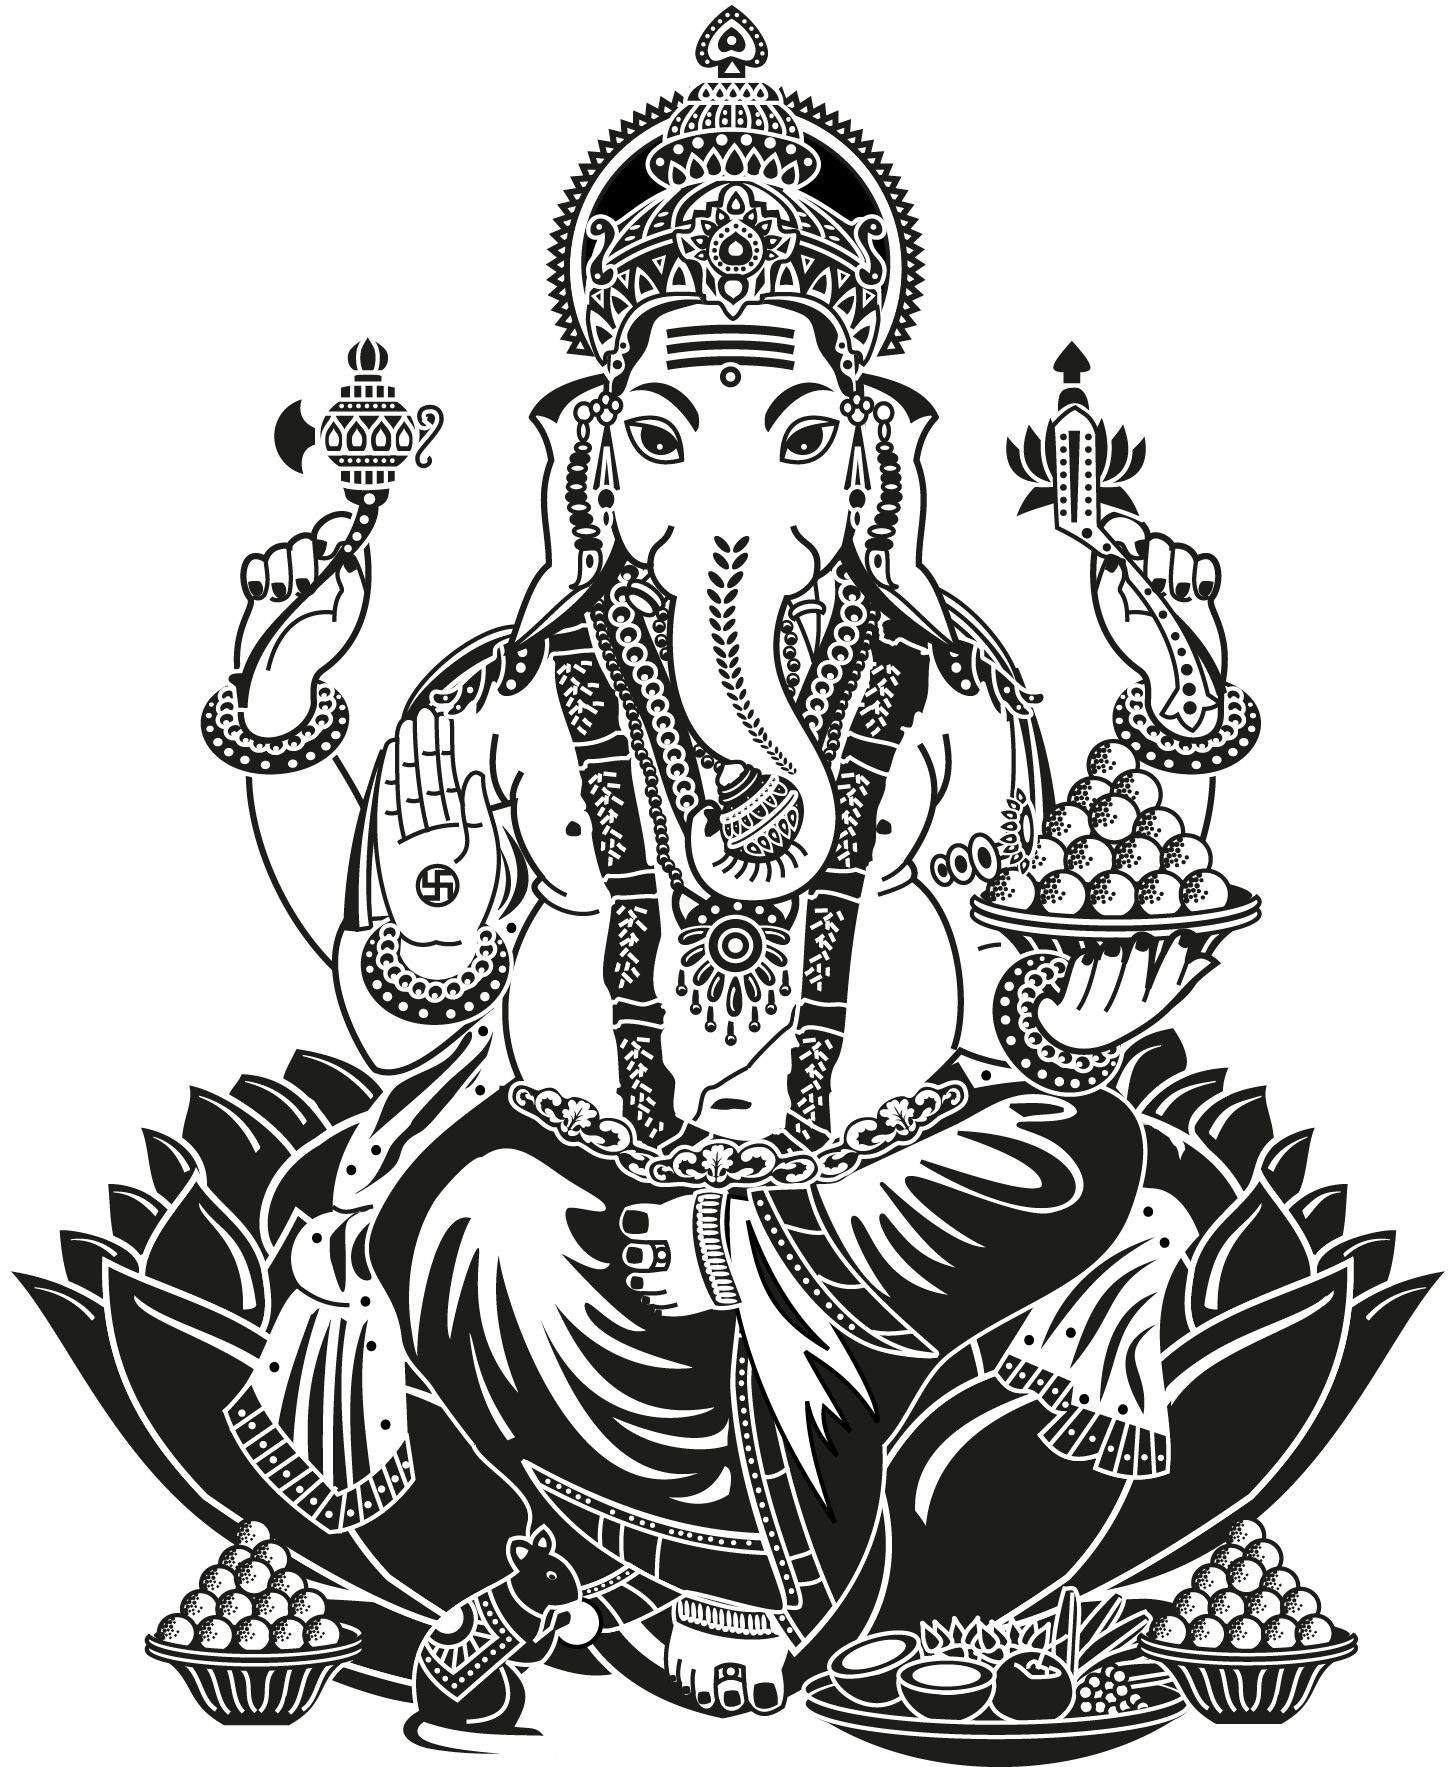 Clipart kuber scheme online payment clipart royalty free download 2019 ganesha and kubera story | ganesha teaching lesson to kubera ... clipart royalty free download